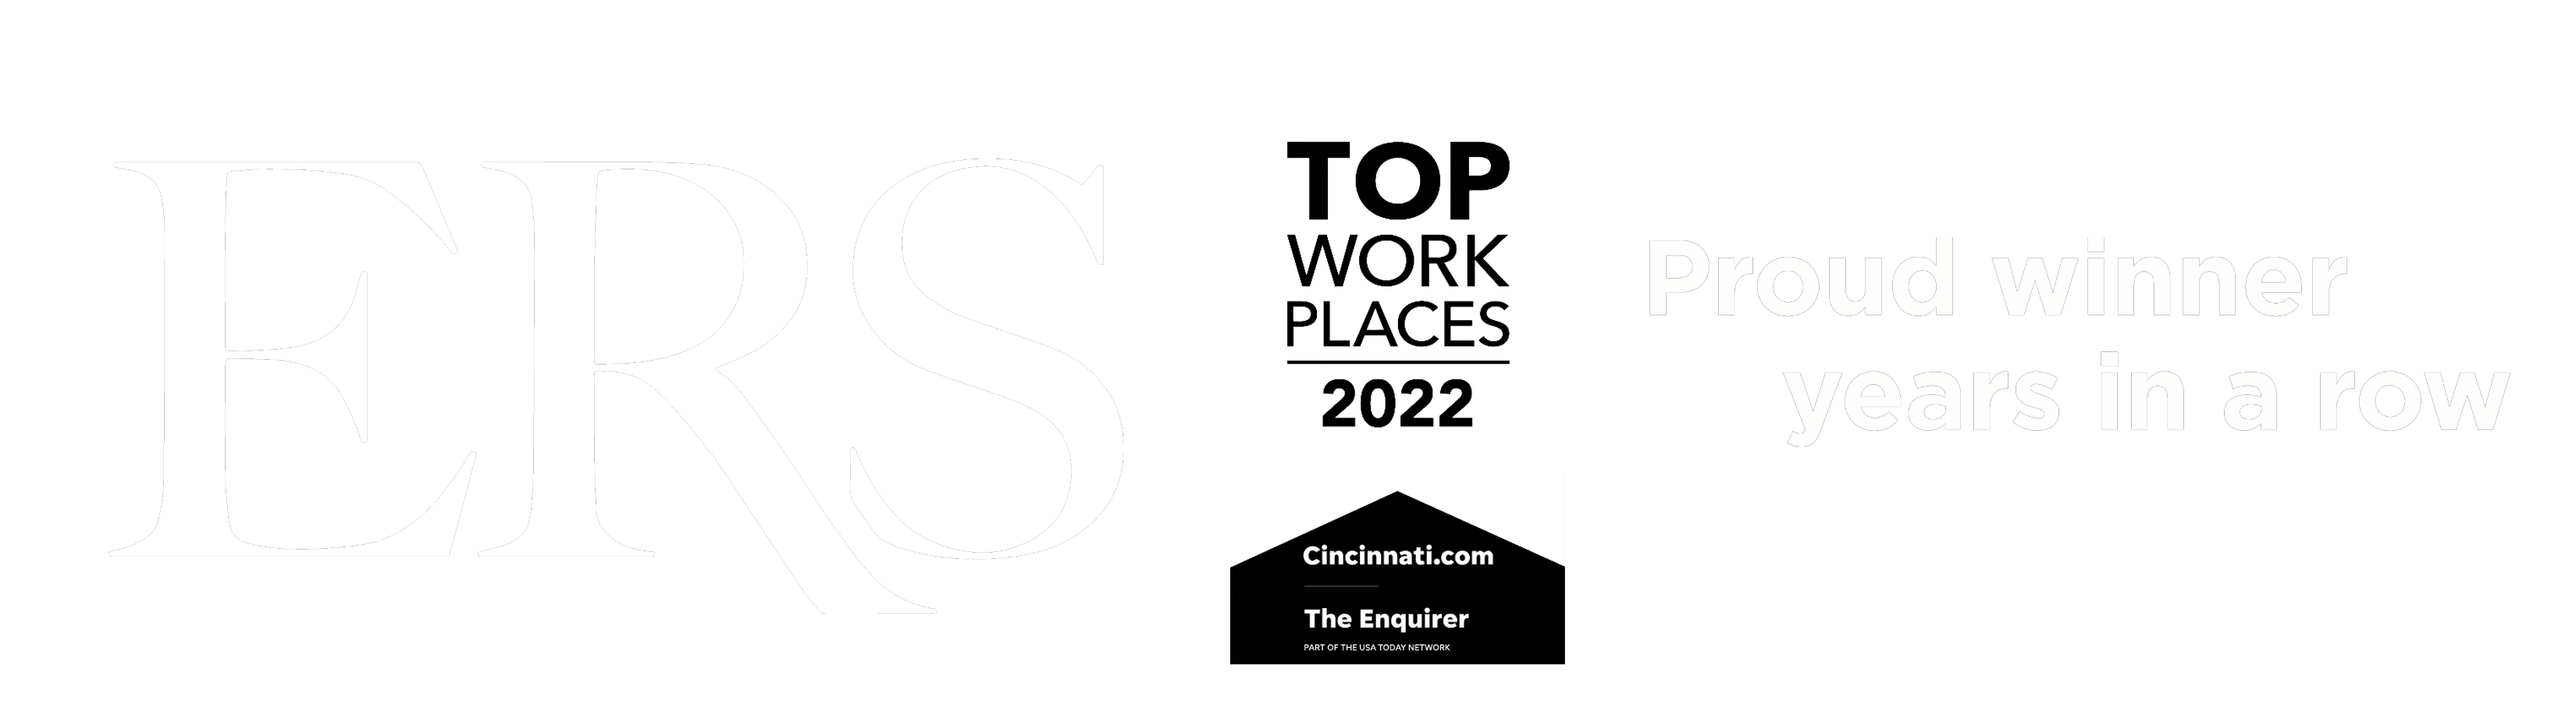 ERS - Top Places to Work 2019